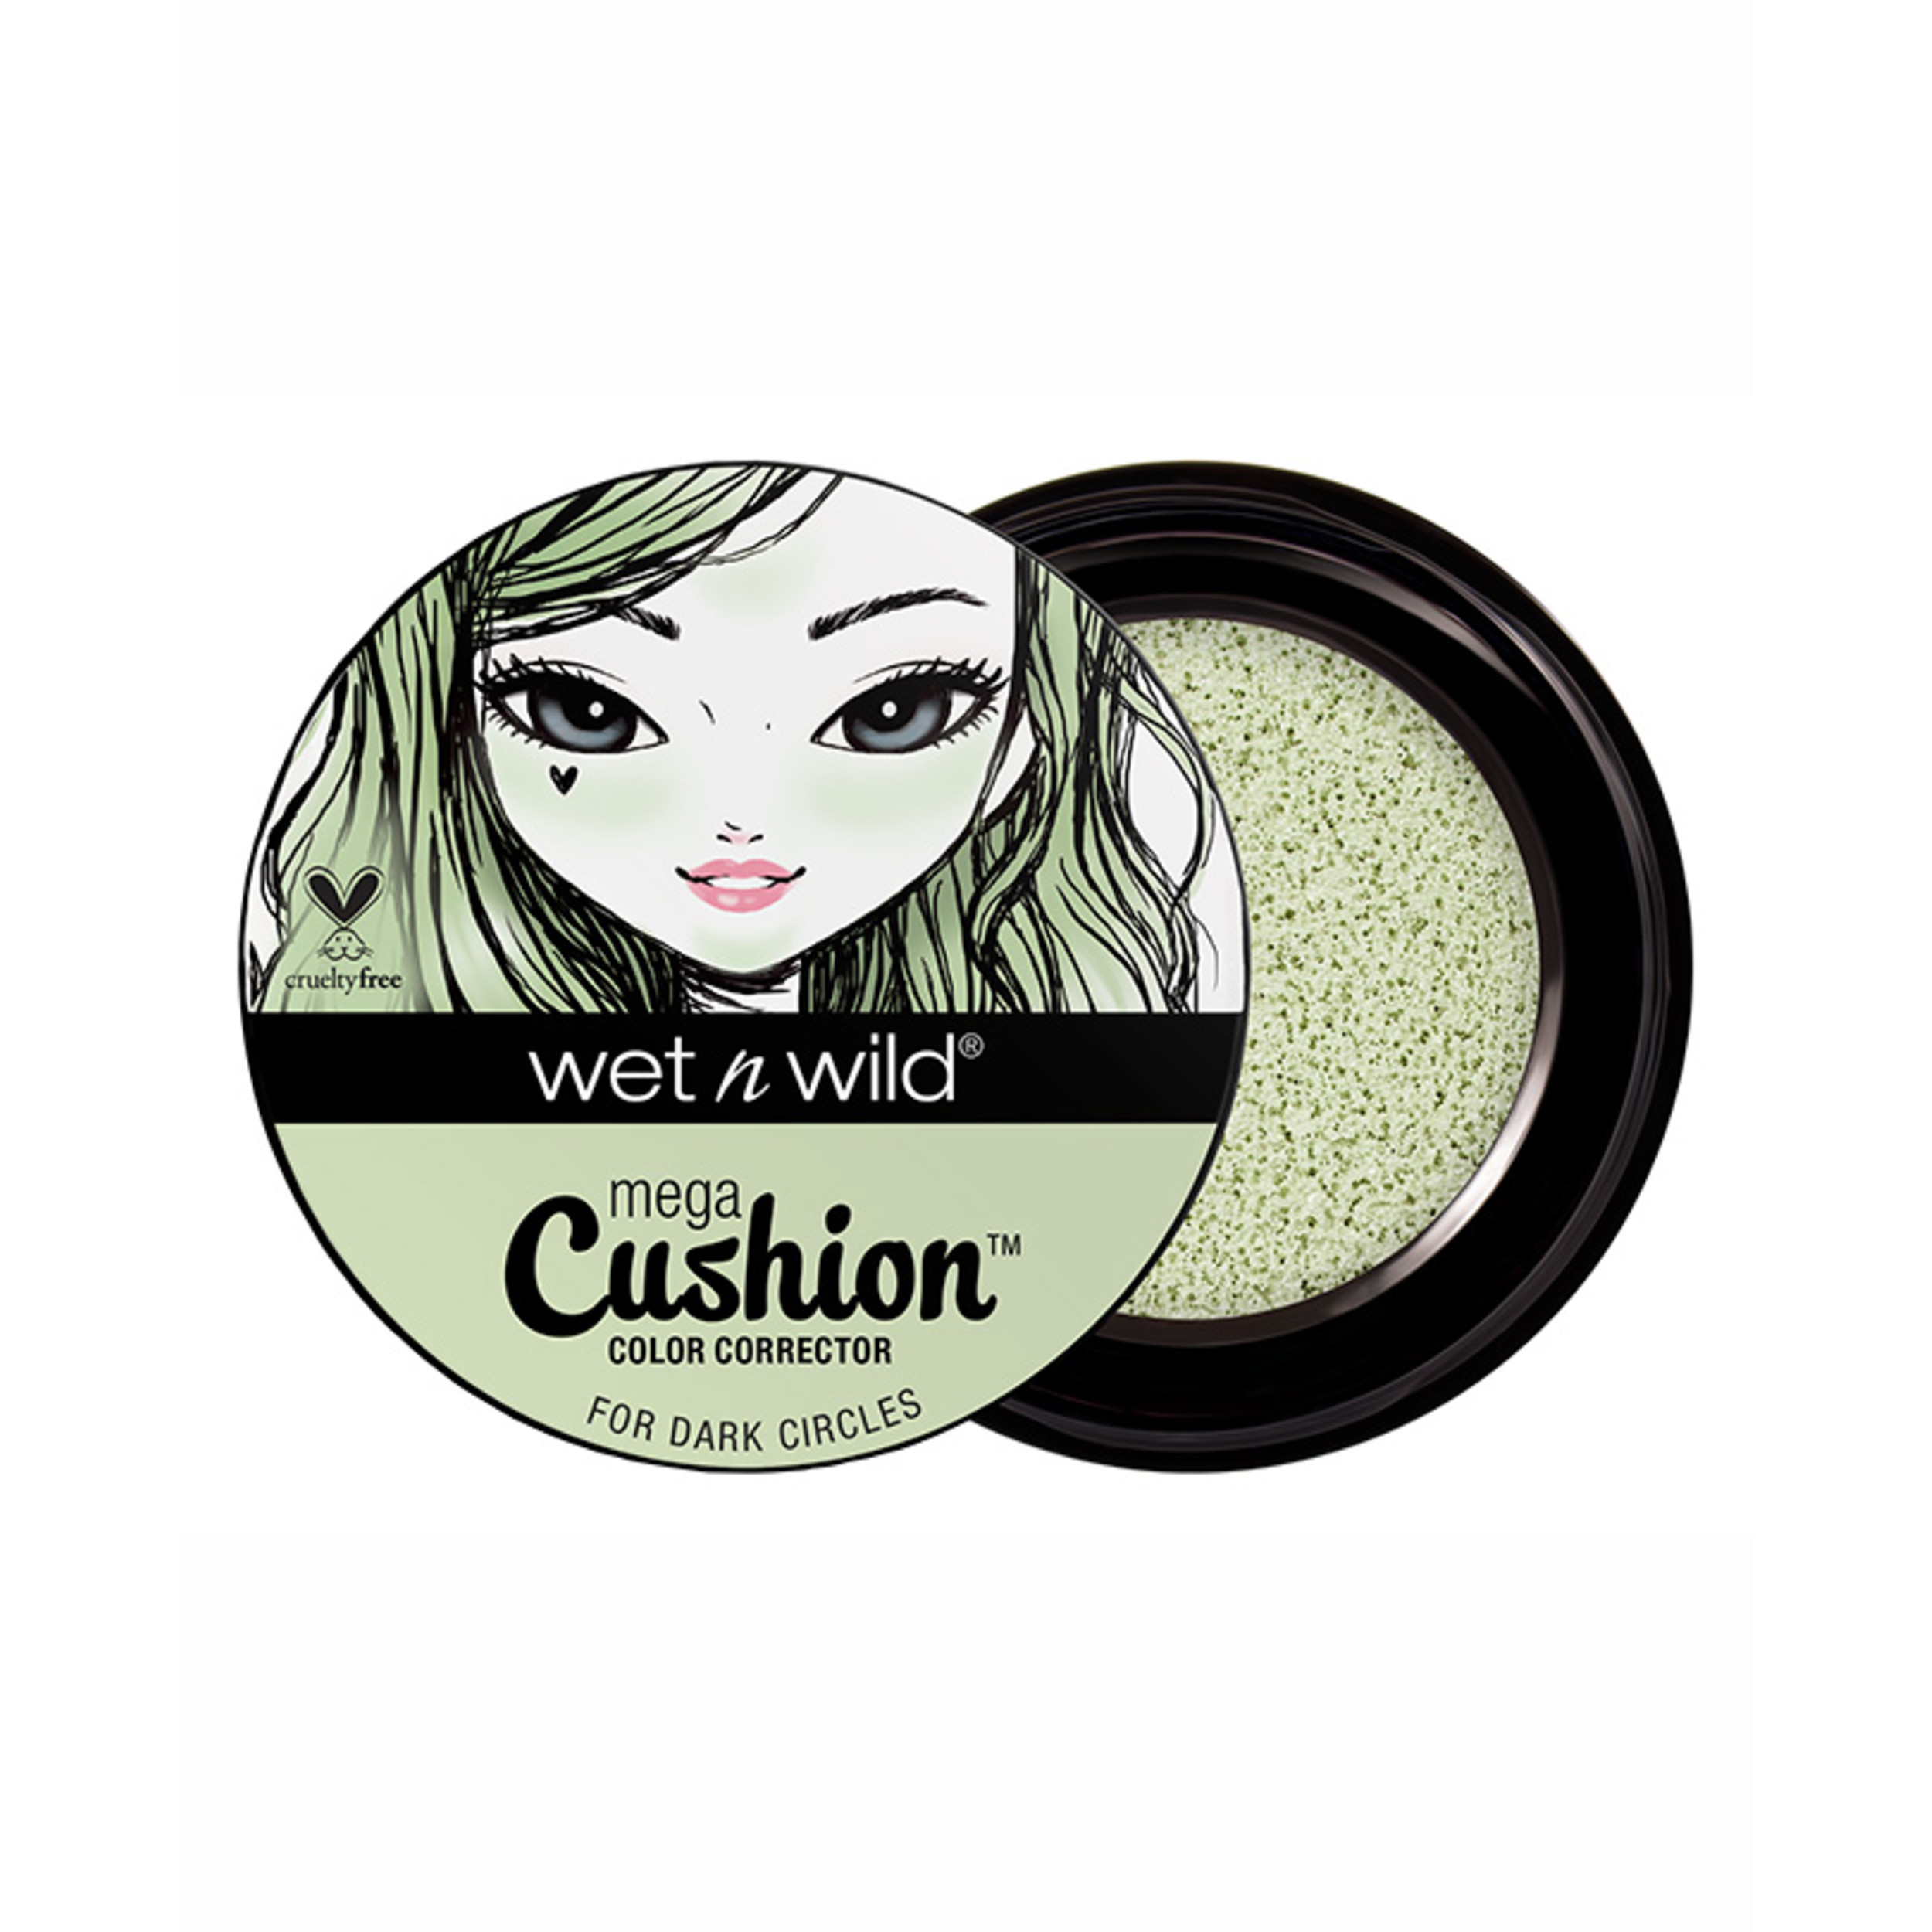 wet n wild MegaCushion Color Corrector Concealer, Yellow